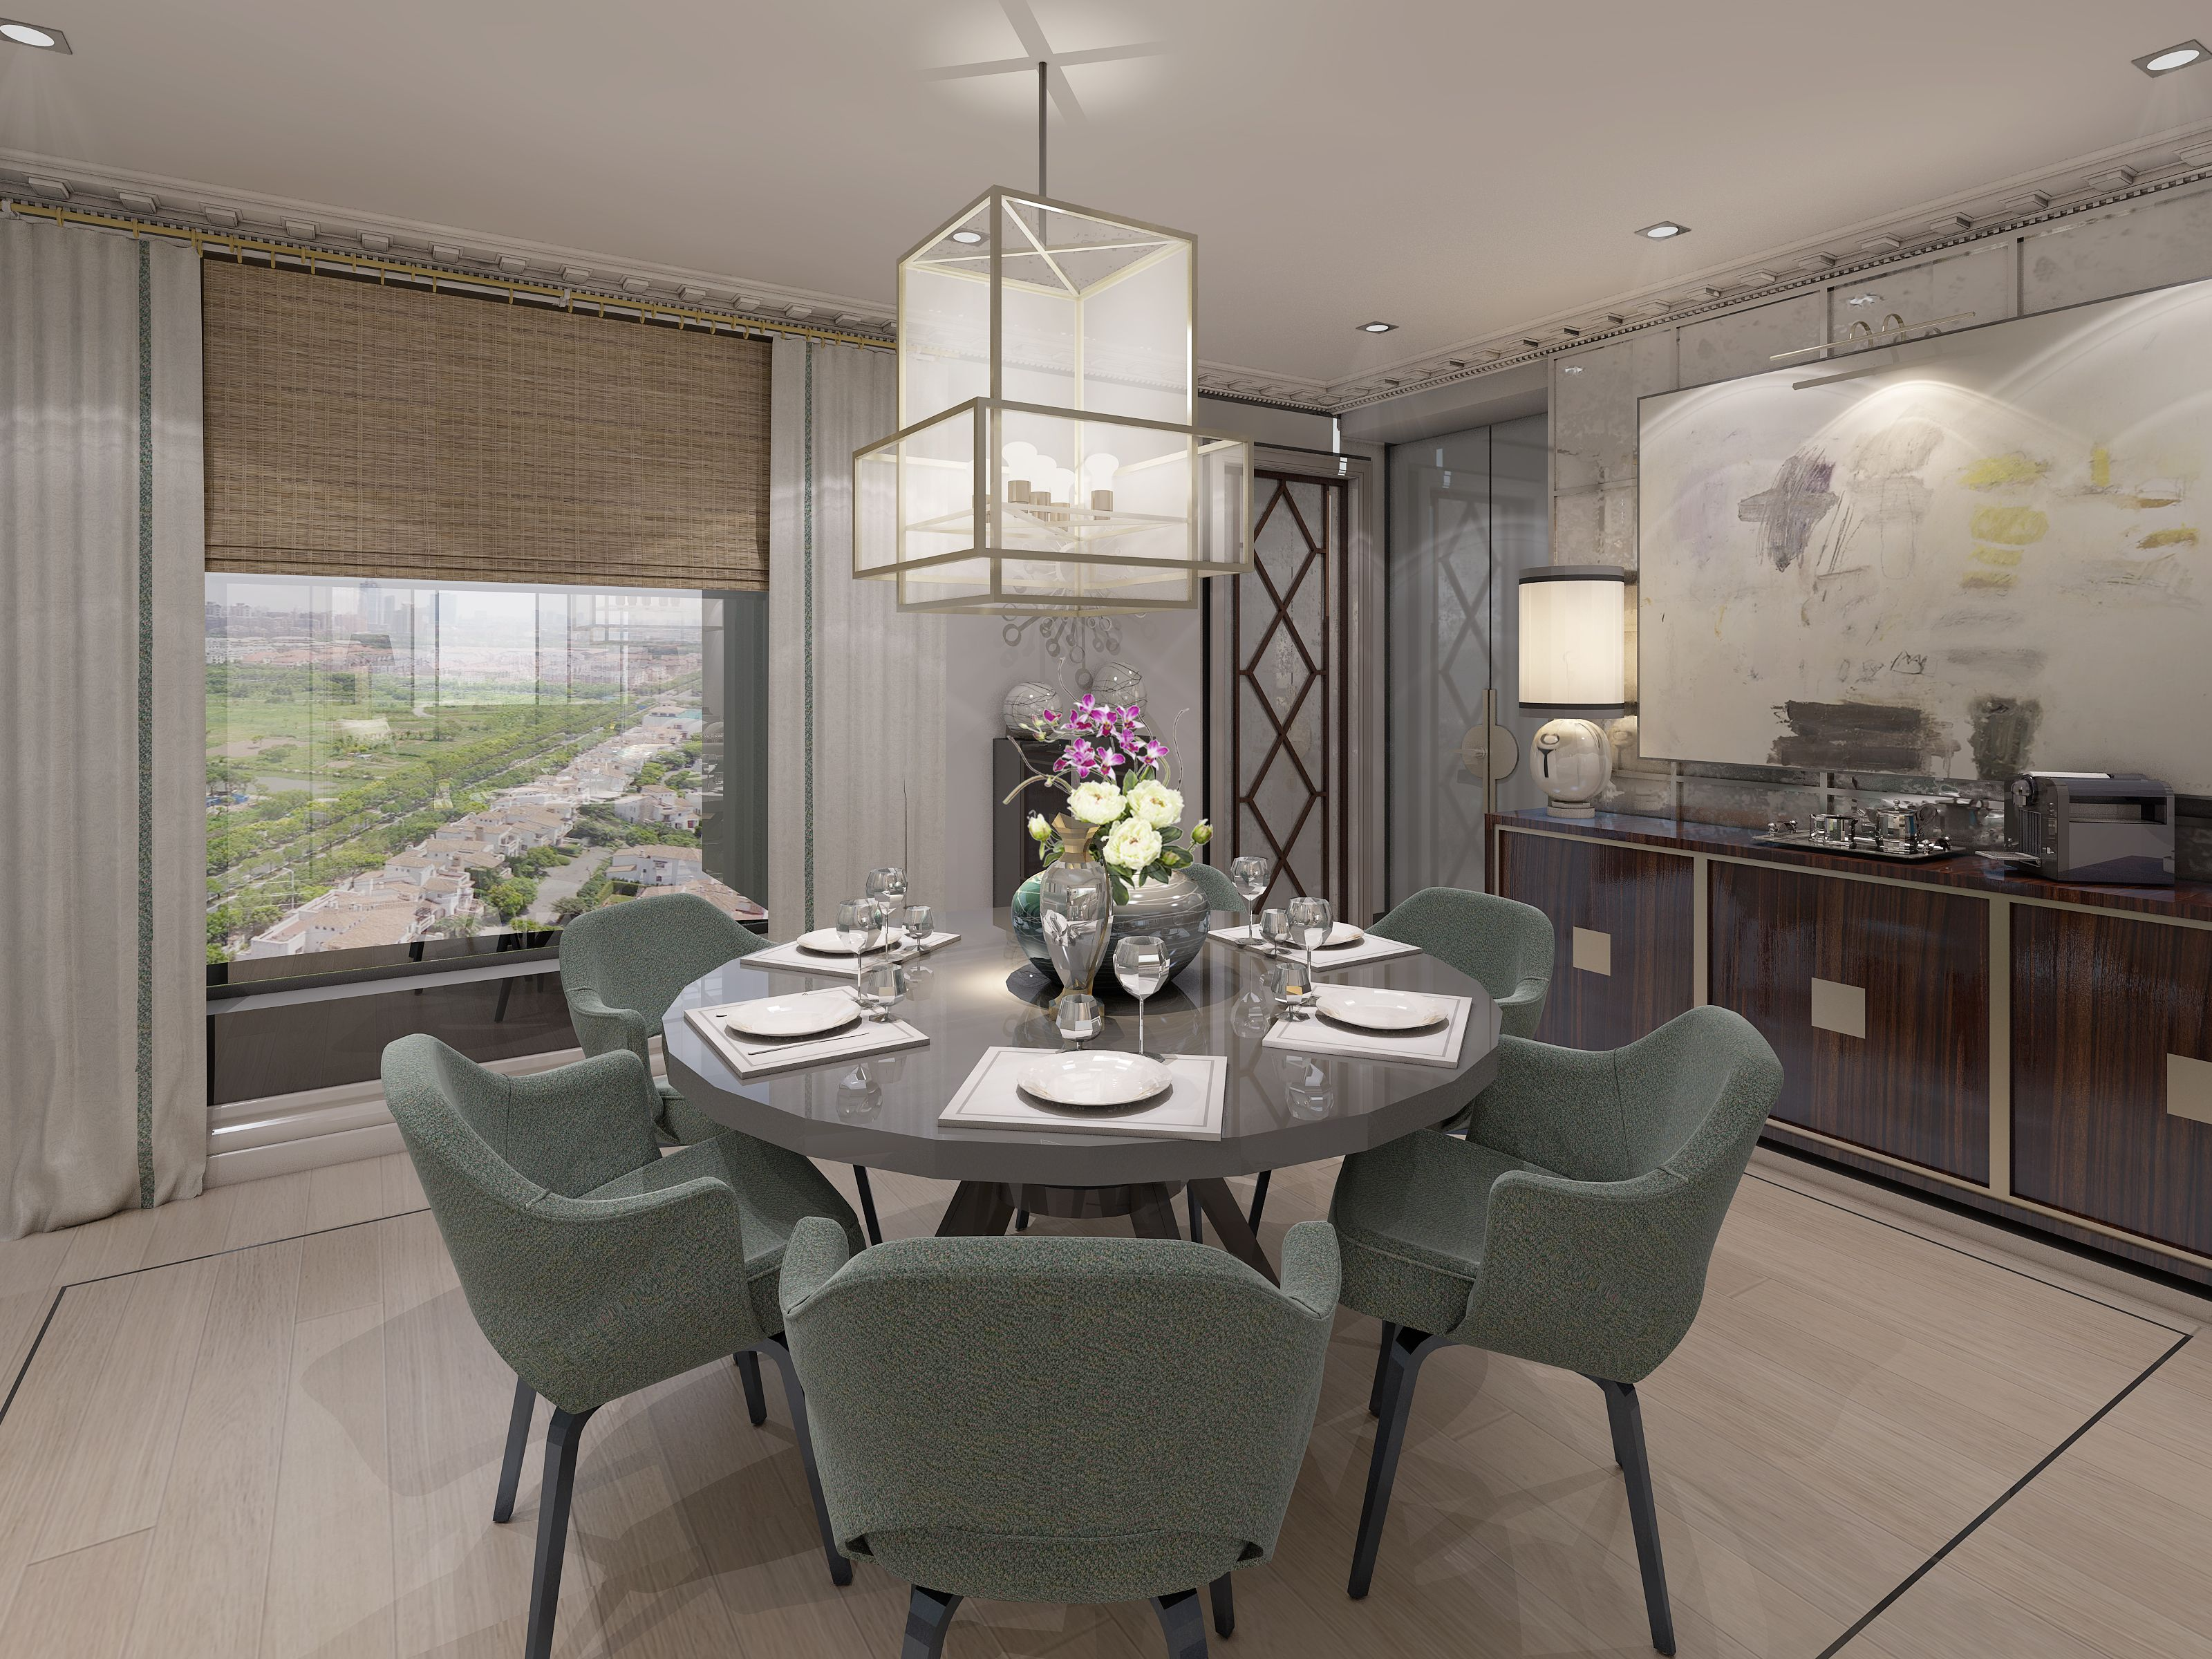 Lovely Apartment Of 250m2 In Shanghai Pudong For A Lawyer And His Family. Designed  By TRIBEKA. Room InteriorRoom DecorationsLawyerShanghaiModern ArtPlushDining  ... Amazing Pictures